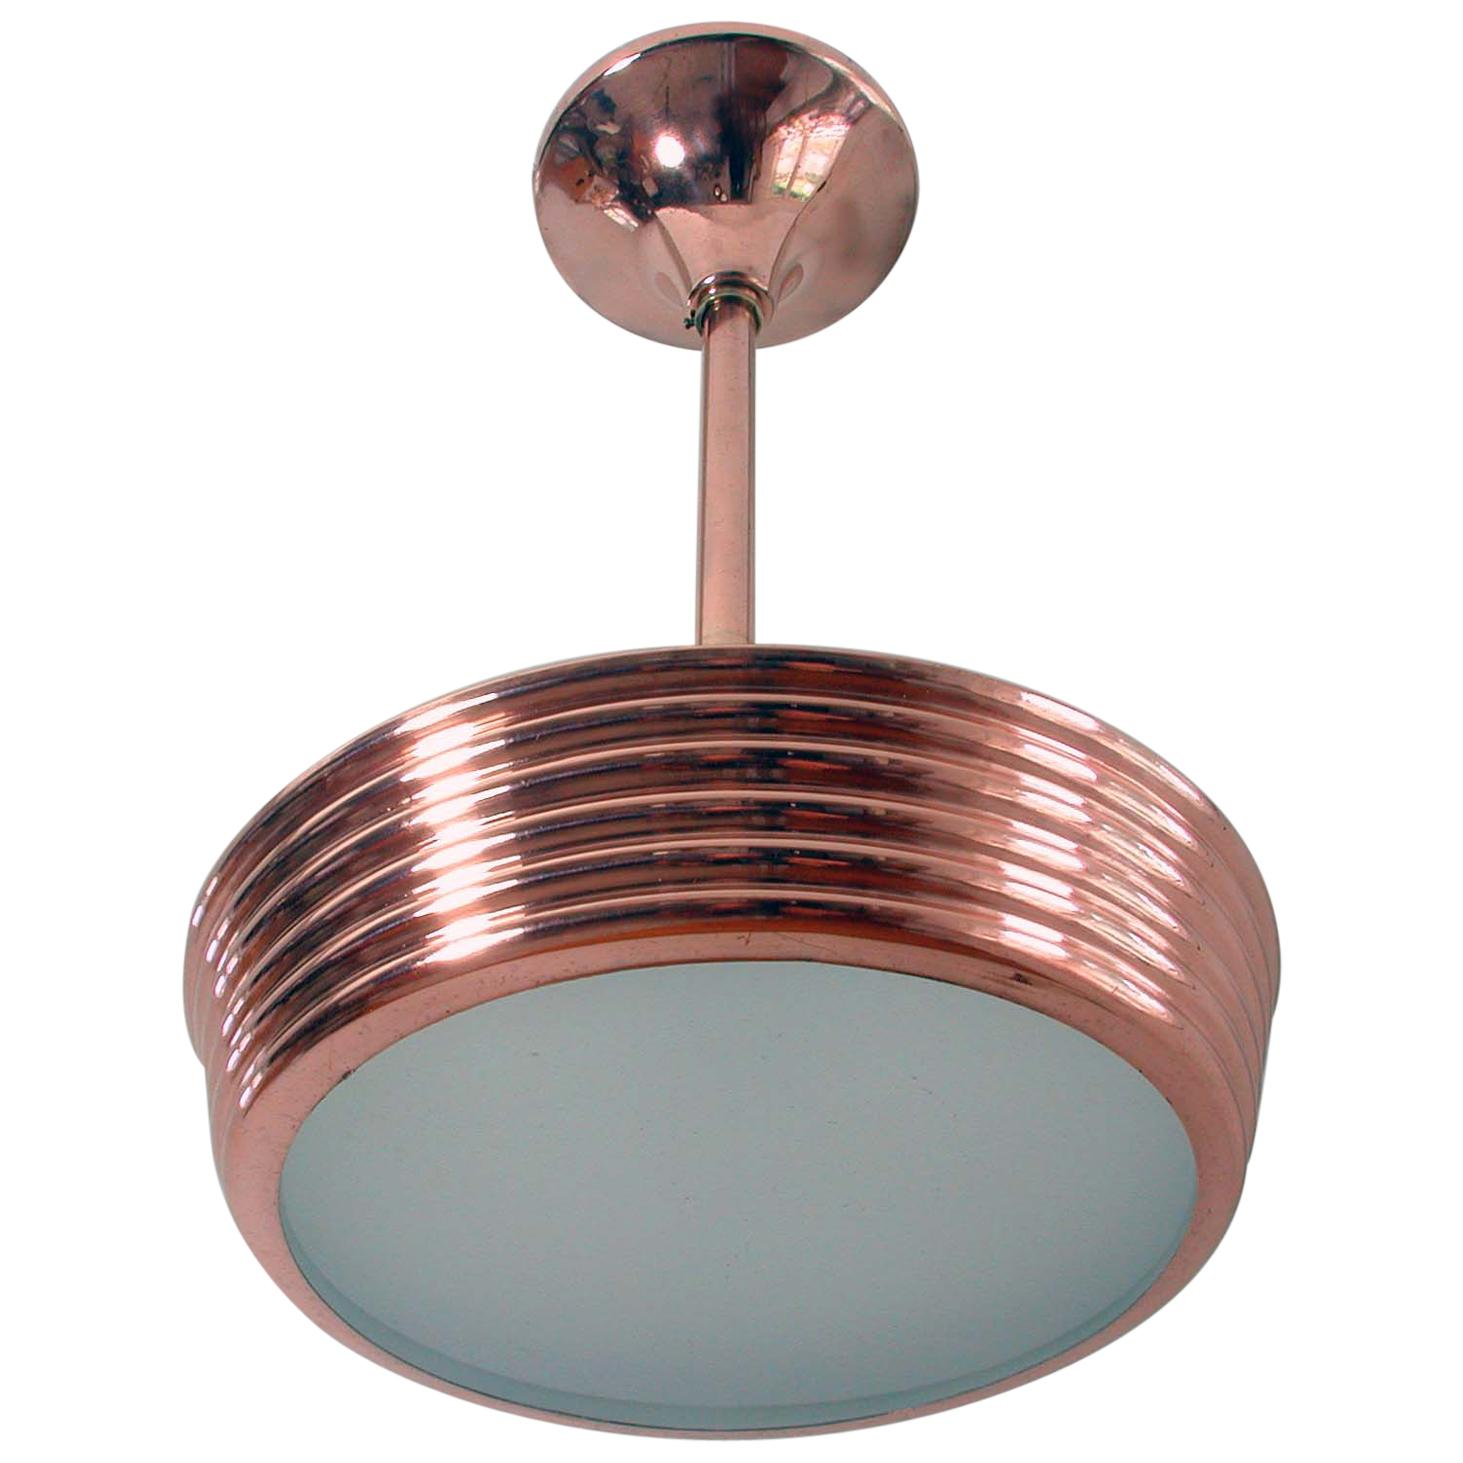 French Art Deco Copper and Satin Glass Flush Mount Pendant, 1930s